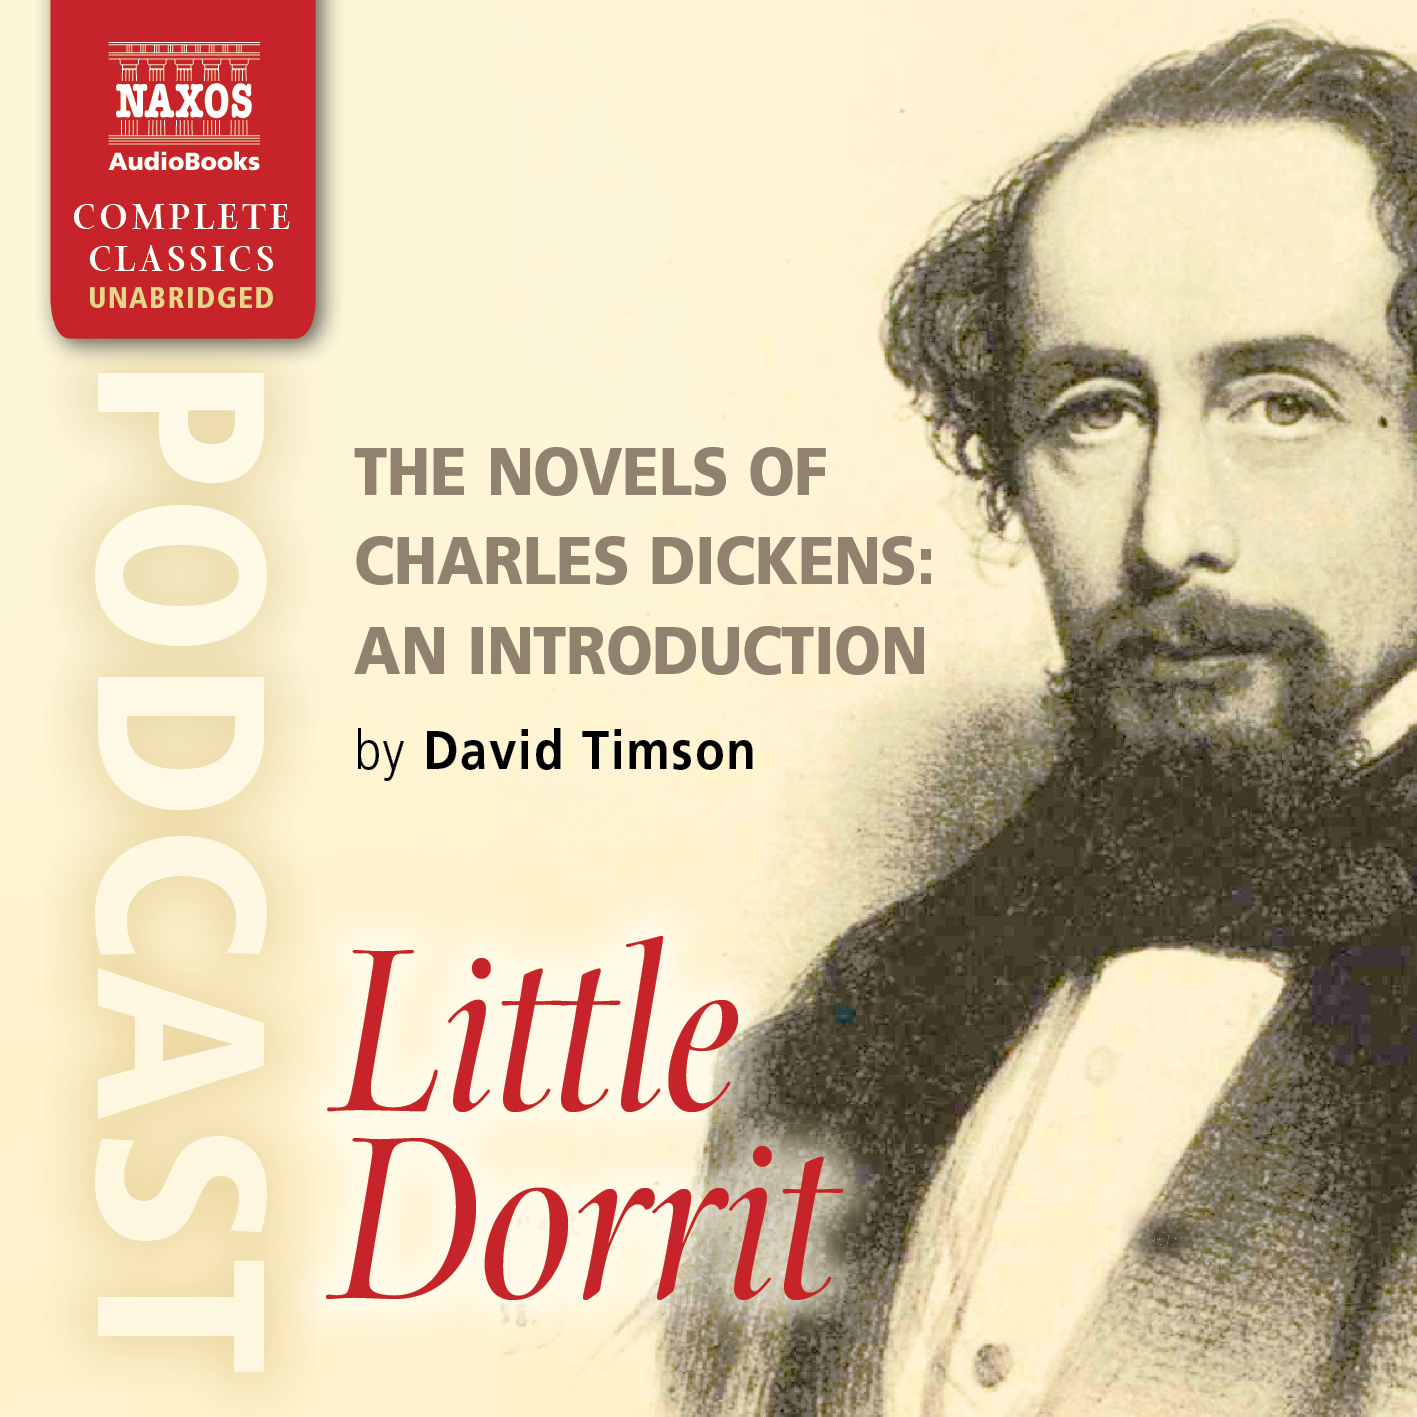 https://naxosaudiobooks.com/wp-content/uploads/2019/08/NA0391_Little_Dorrit_Podcast.jpg